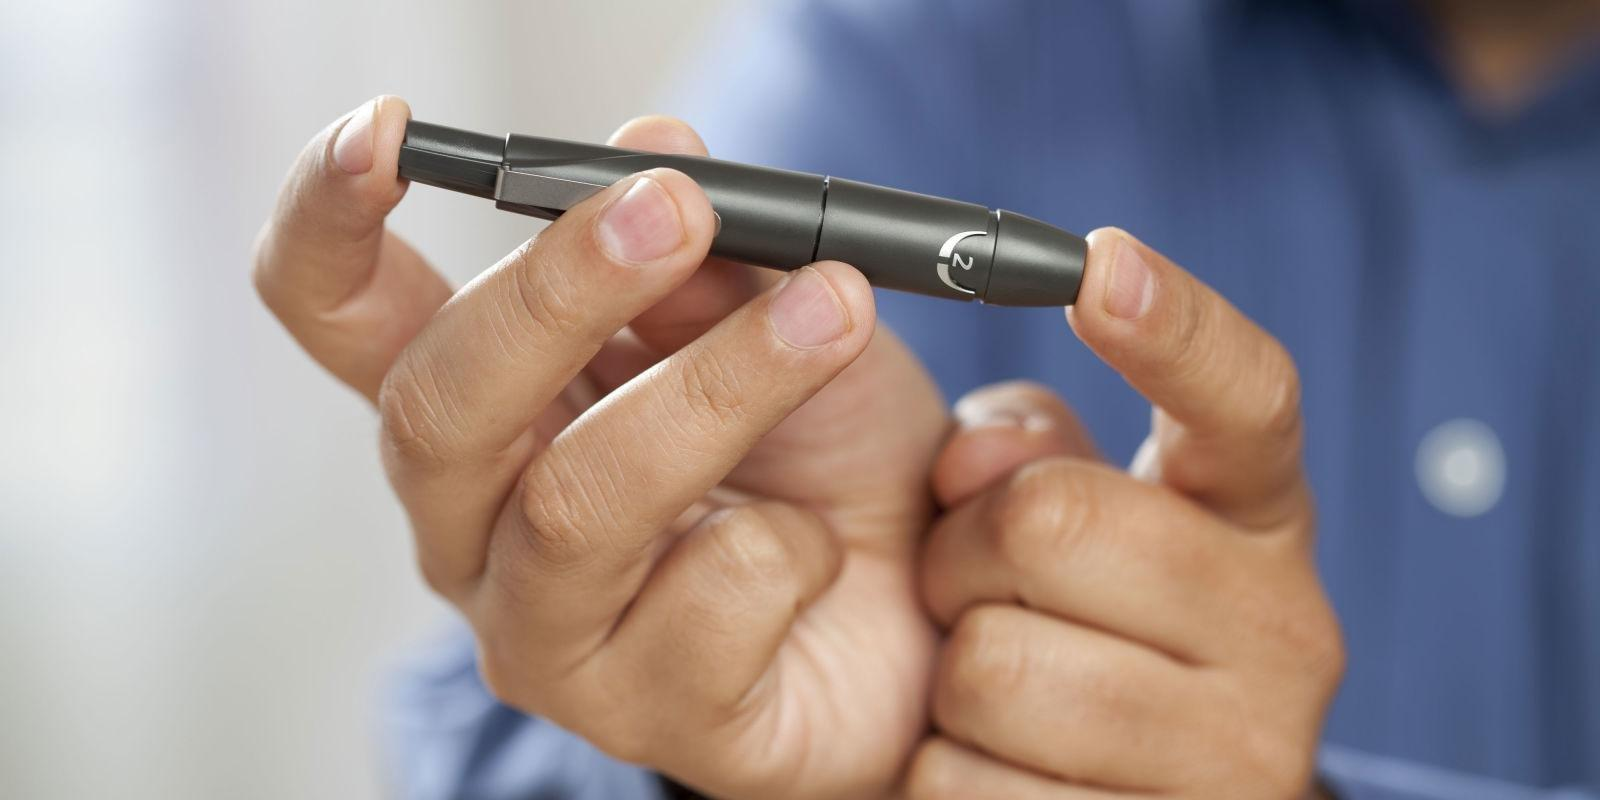 Does A High Glucose Level Mean I Have Diabetes?